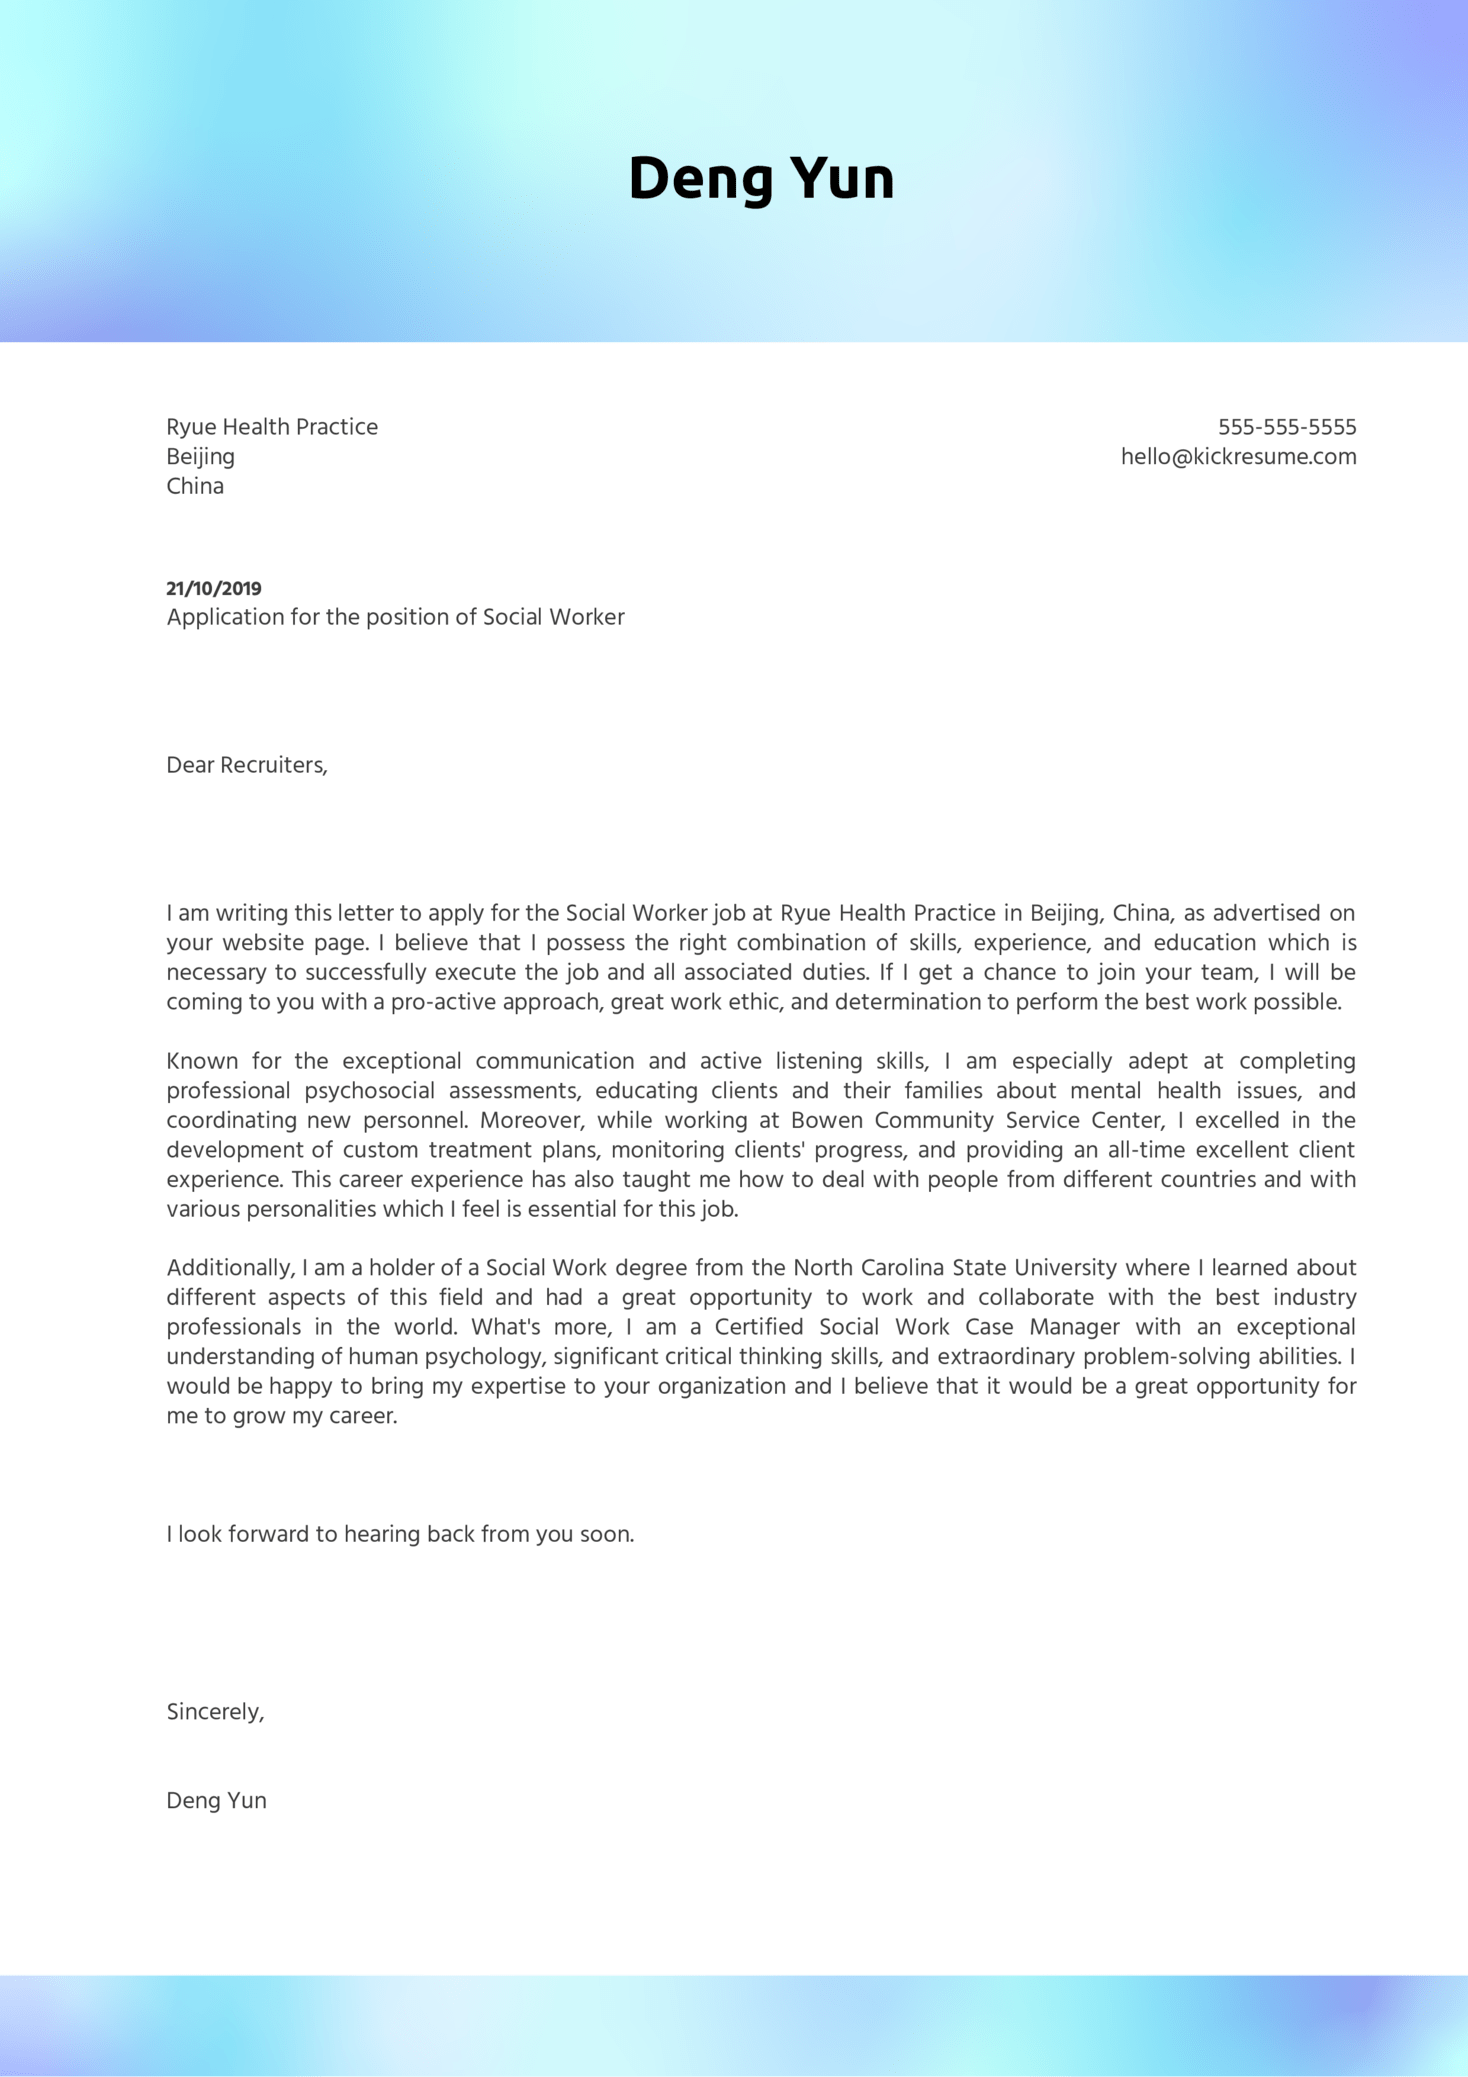 Social Worker Cover Letter Sample